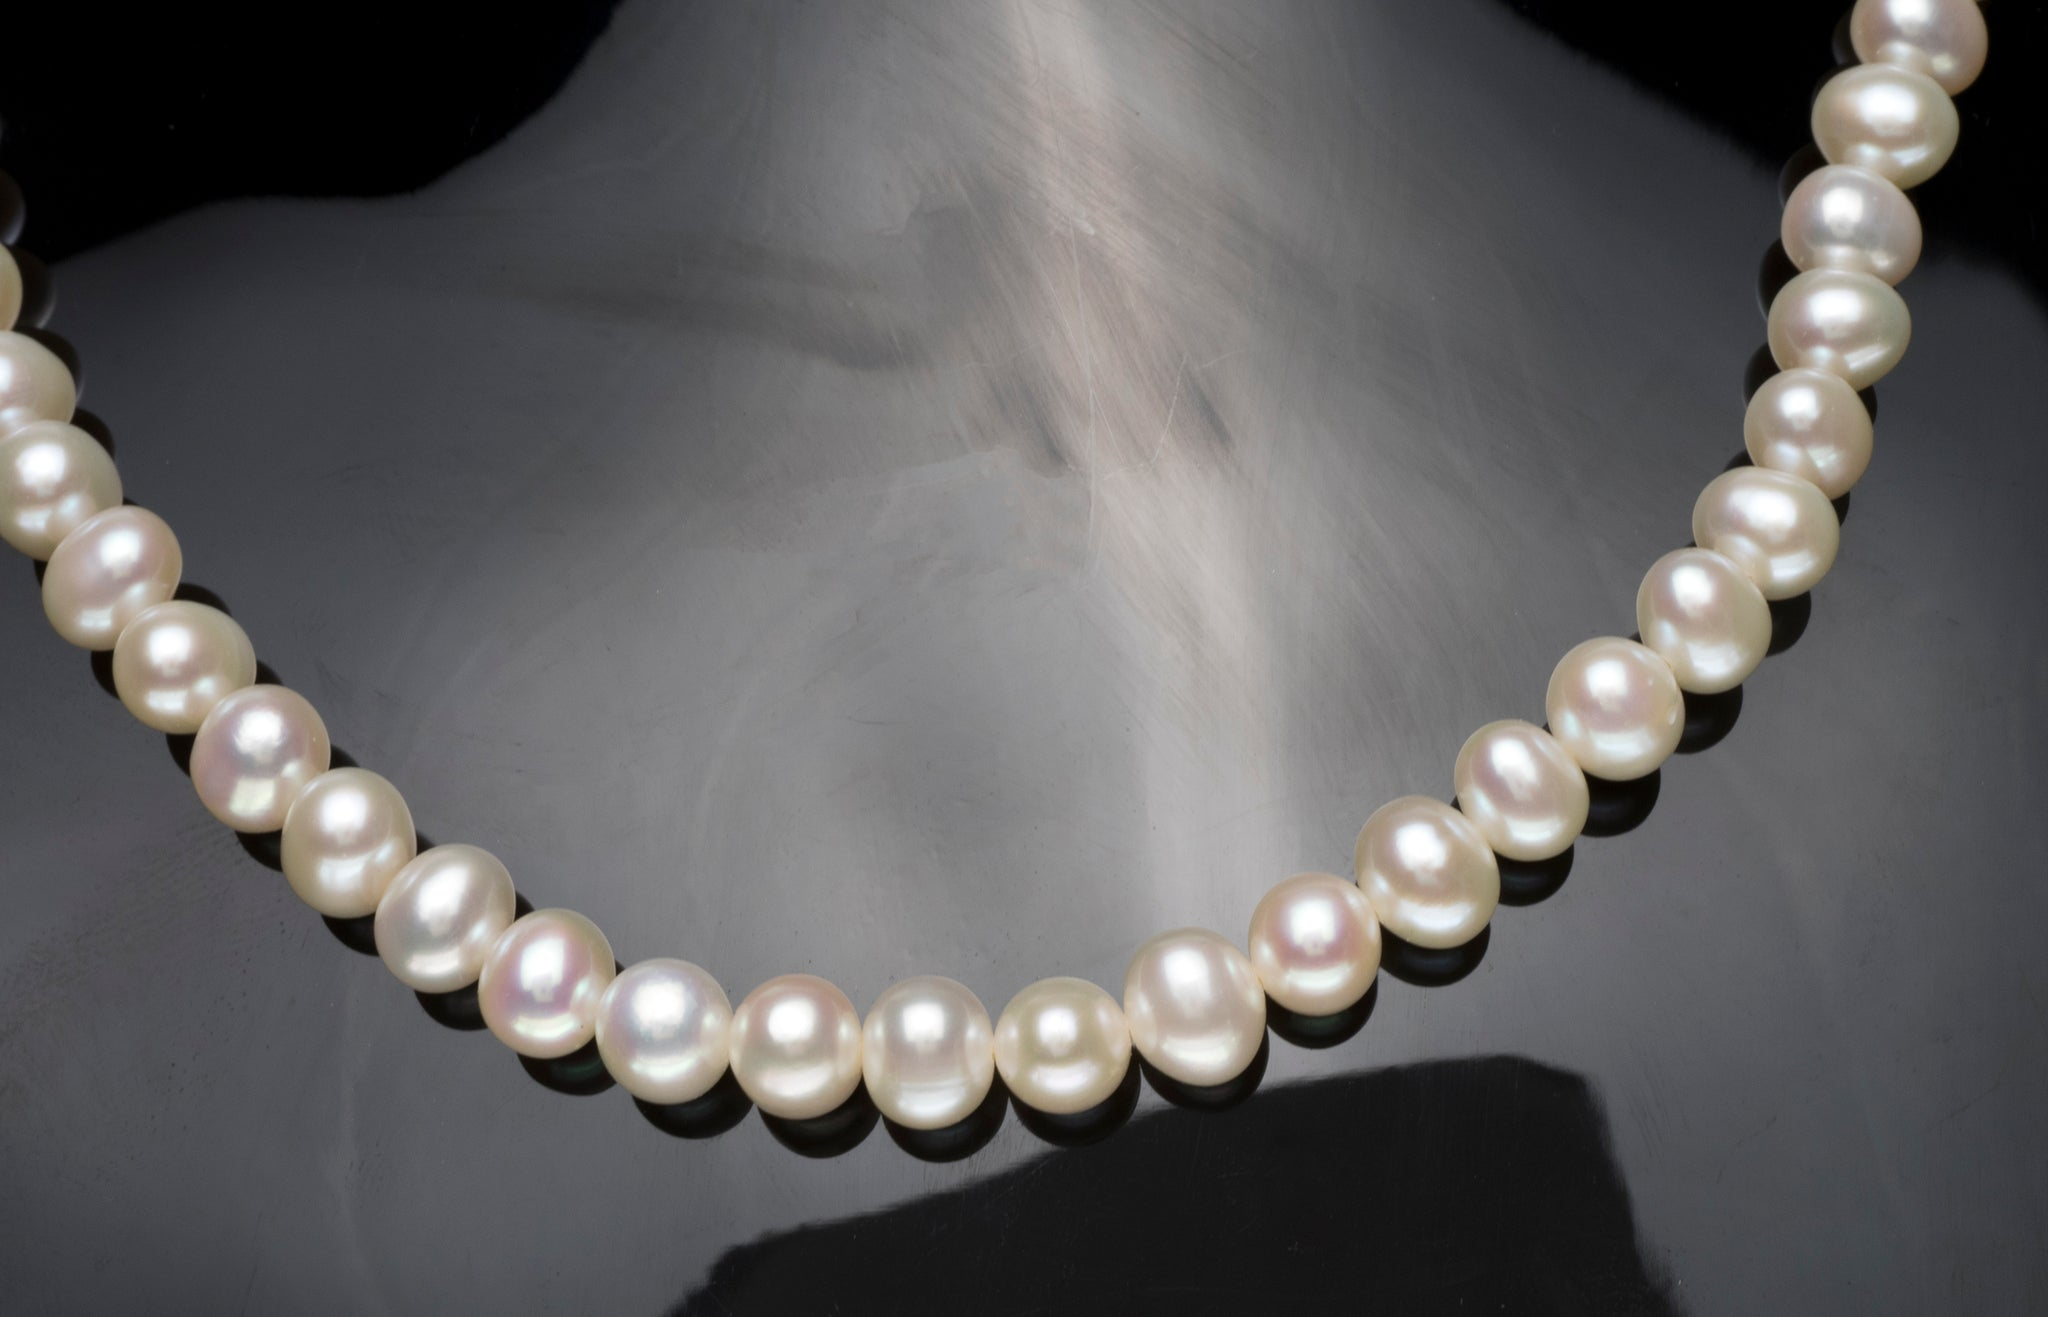 N-007 Pearl Pendant Freshwater Cultured Pearls 8-9mm with 925 Sterling Silver